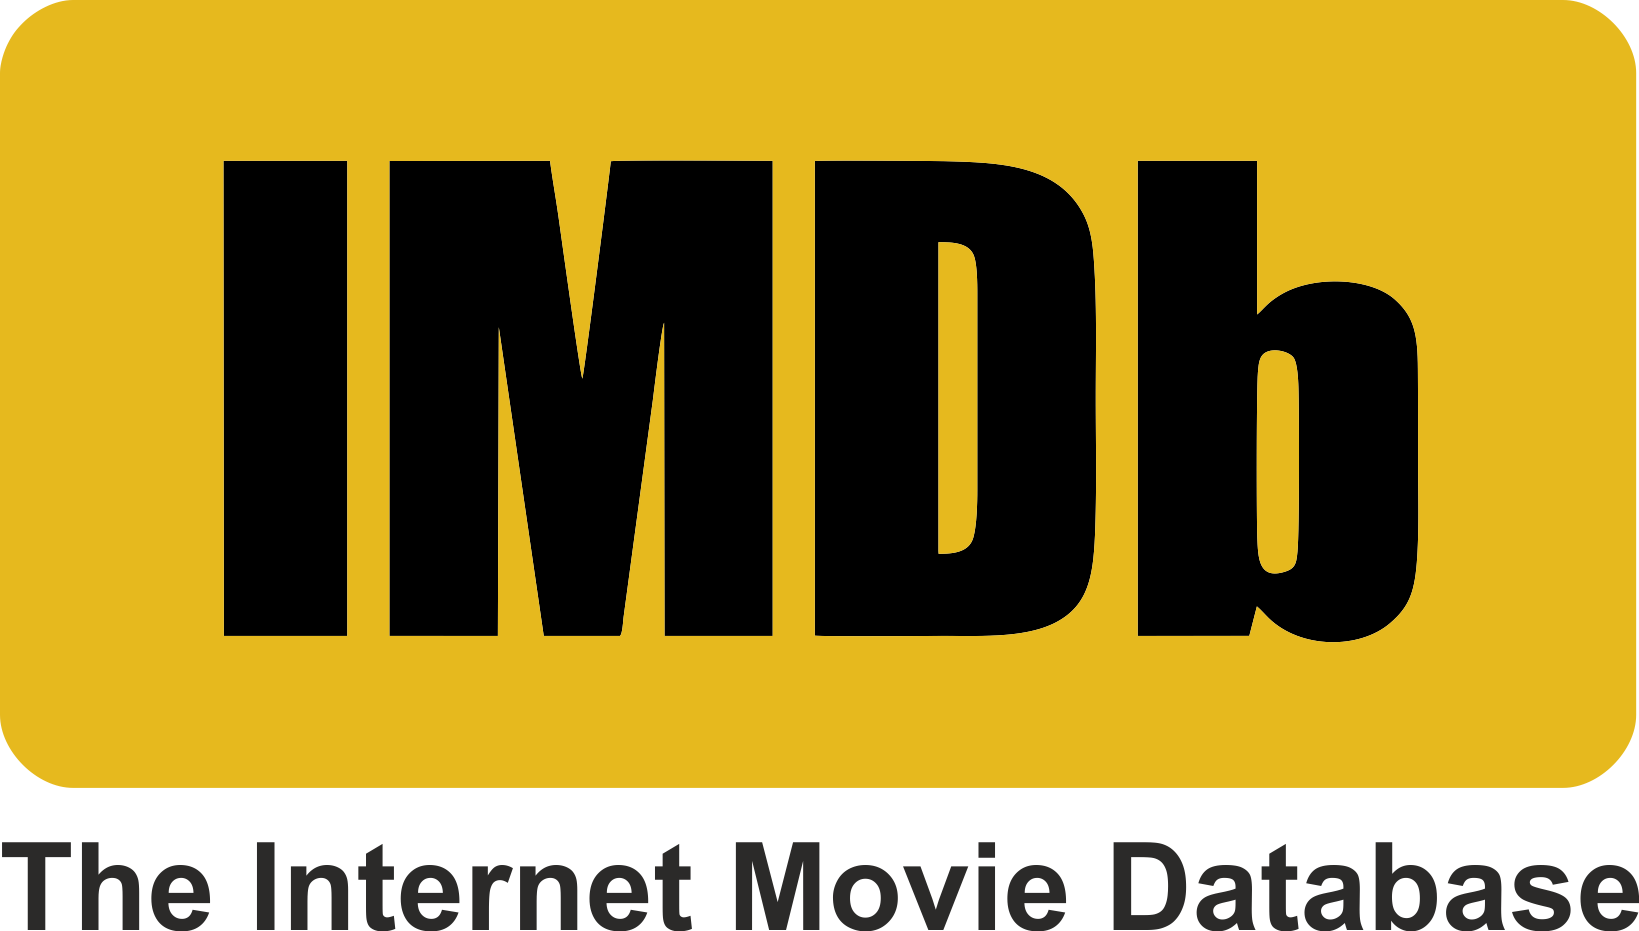 internet-movie-database-nikol-kouklova